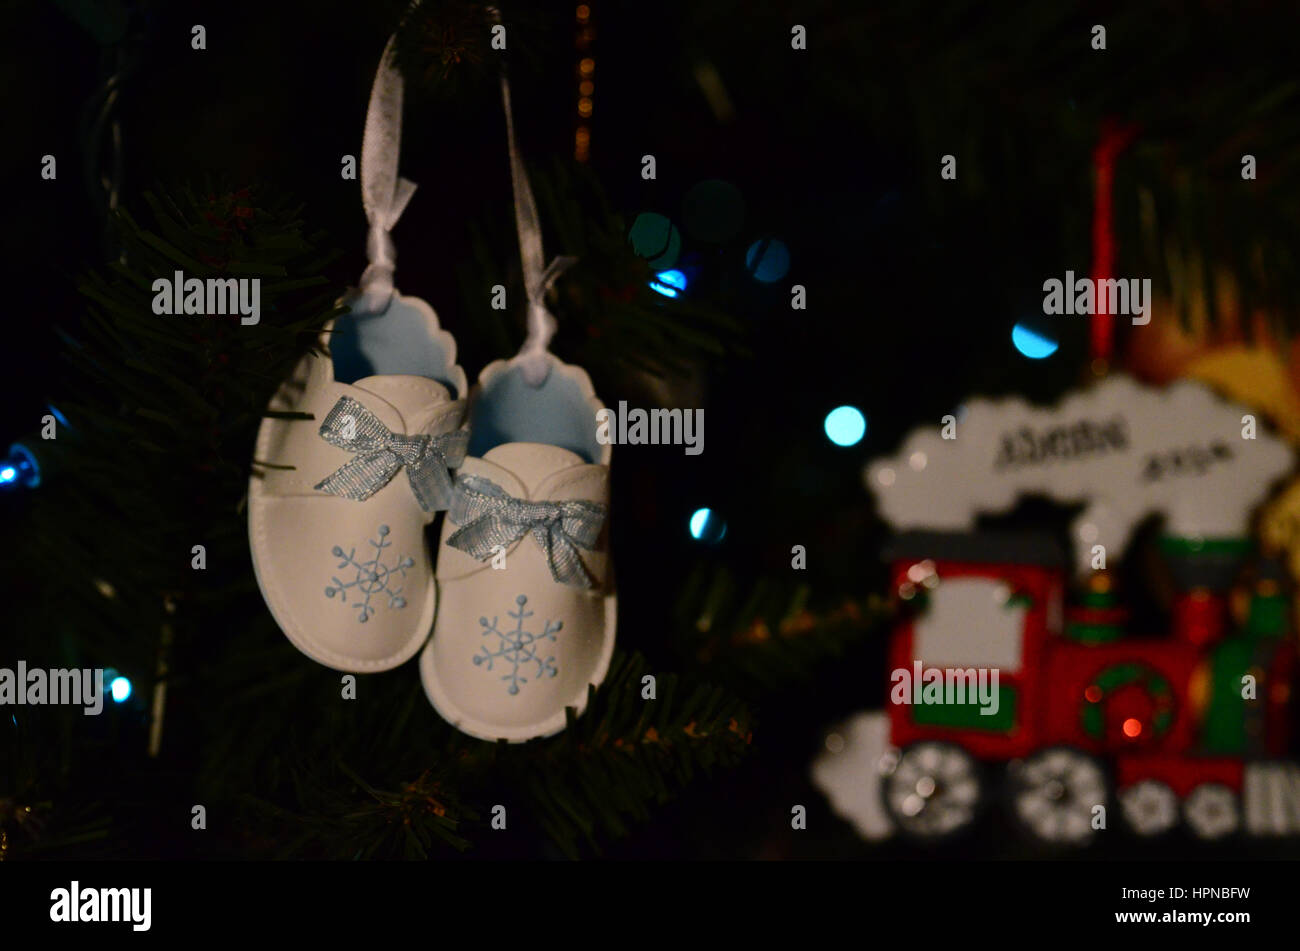 newborn ornament - Stock Image